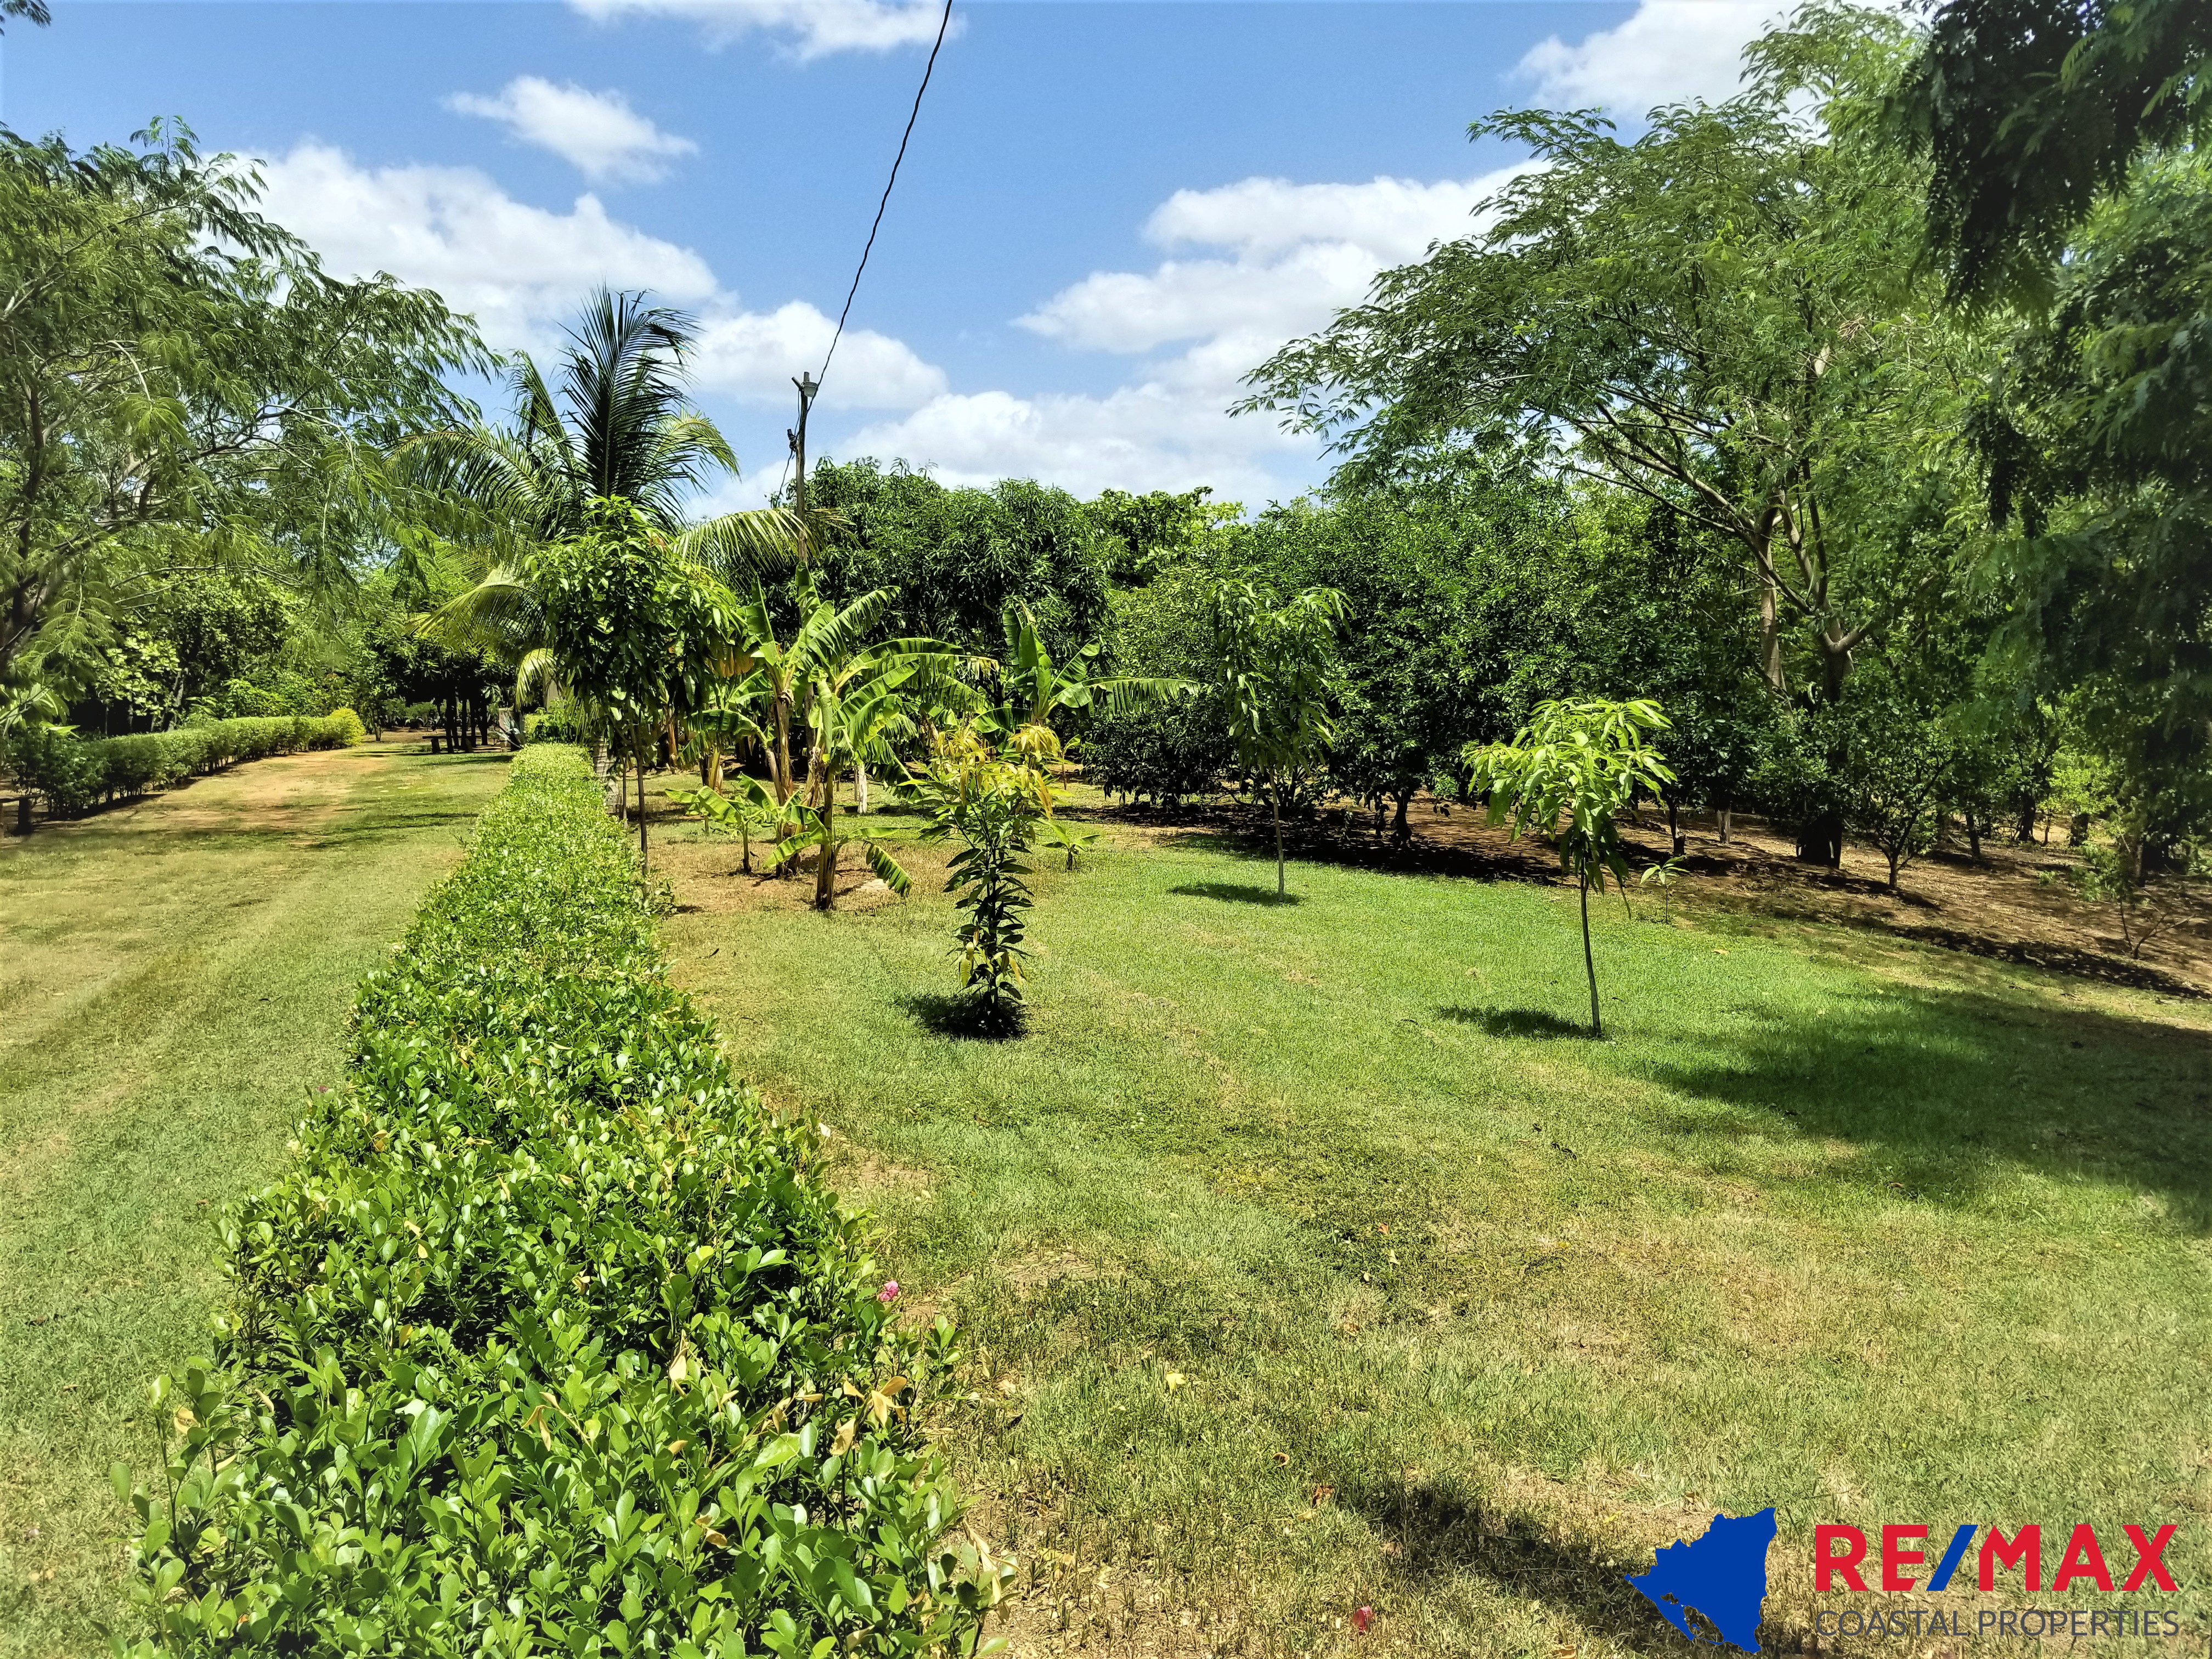 https://property-nicaragua.com/pedrodev/wp-content/uploads/2021/07/In-touch-with-nature-44.jpg